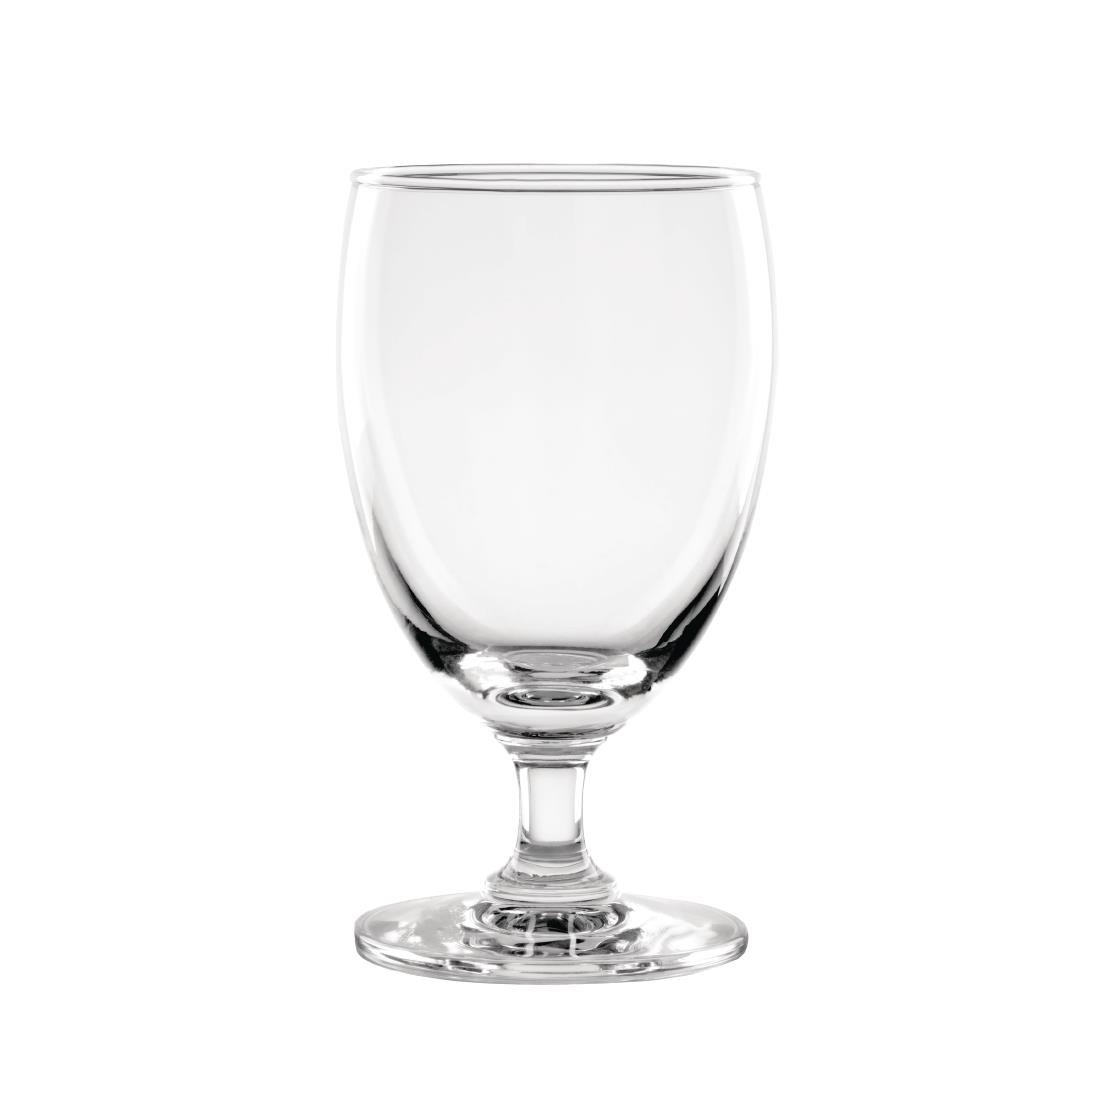 Olympia Cocktail Short Stemmed Wine Glass - 308ml 10 3/4oz (Box 6)